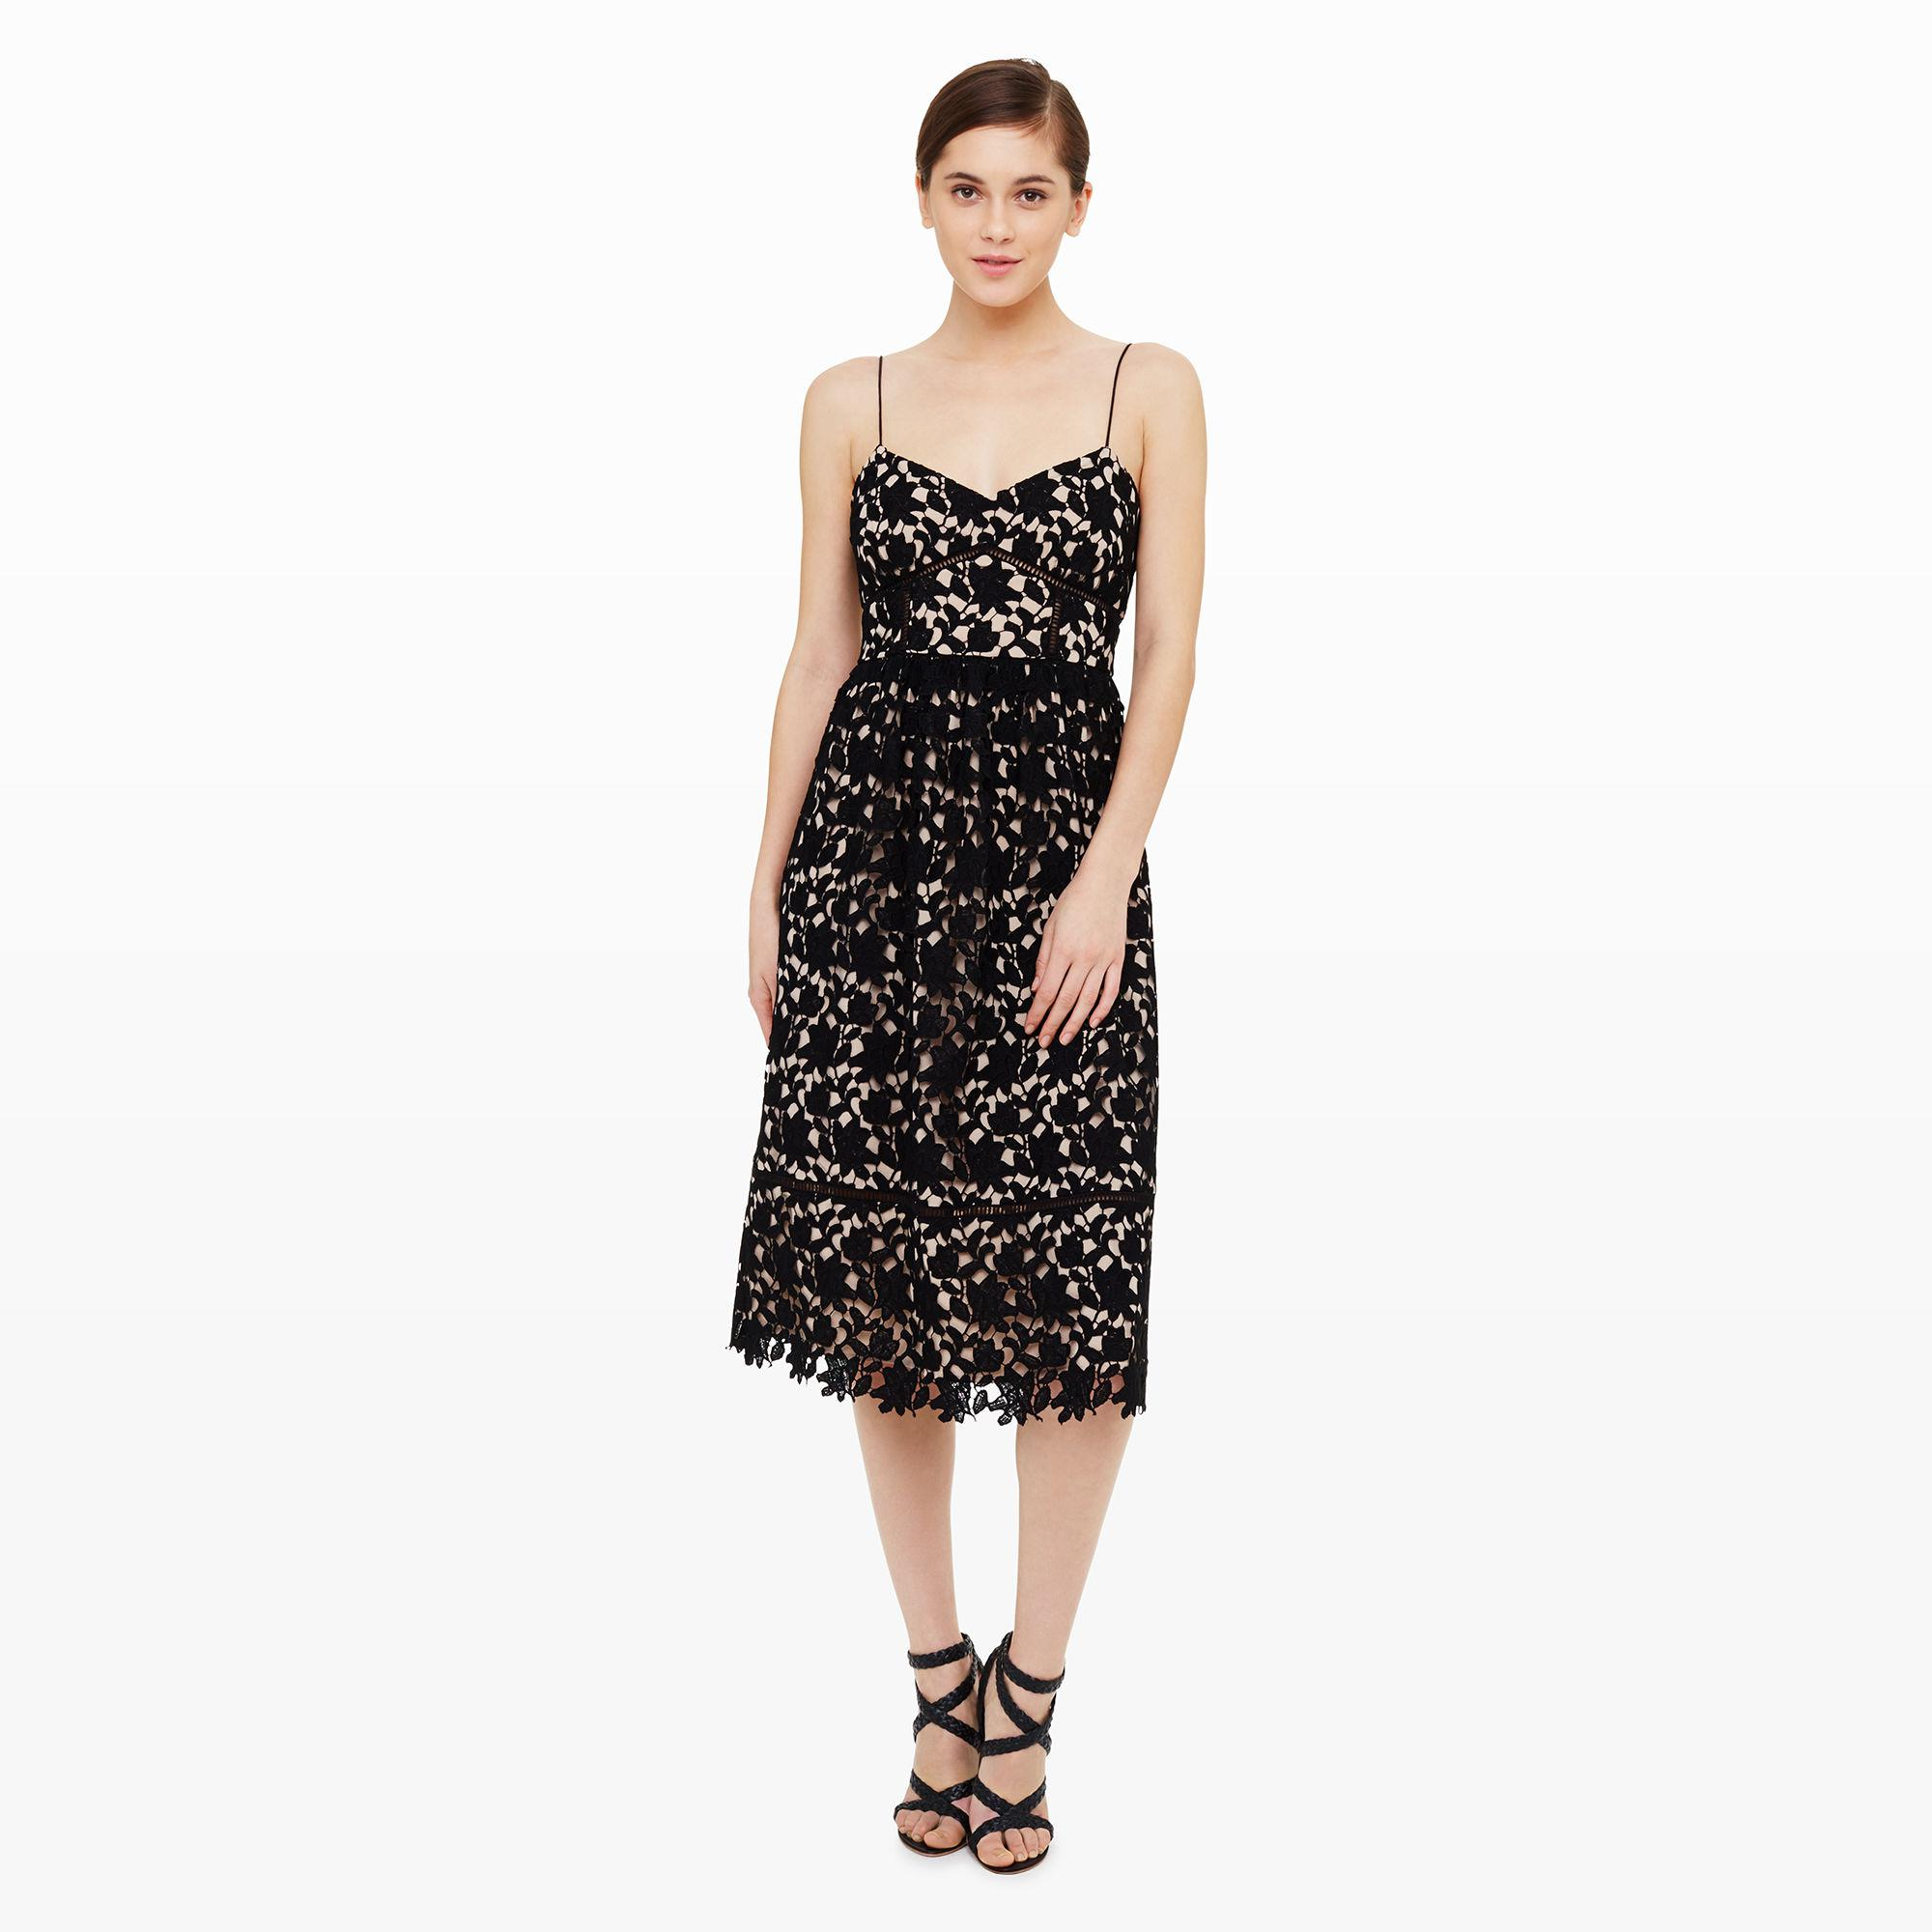 Buy Club lace dresses picture trends